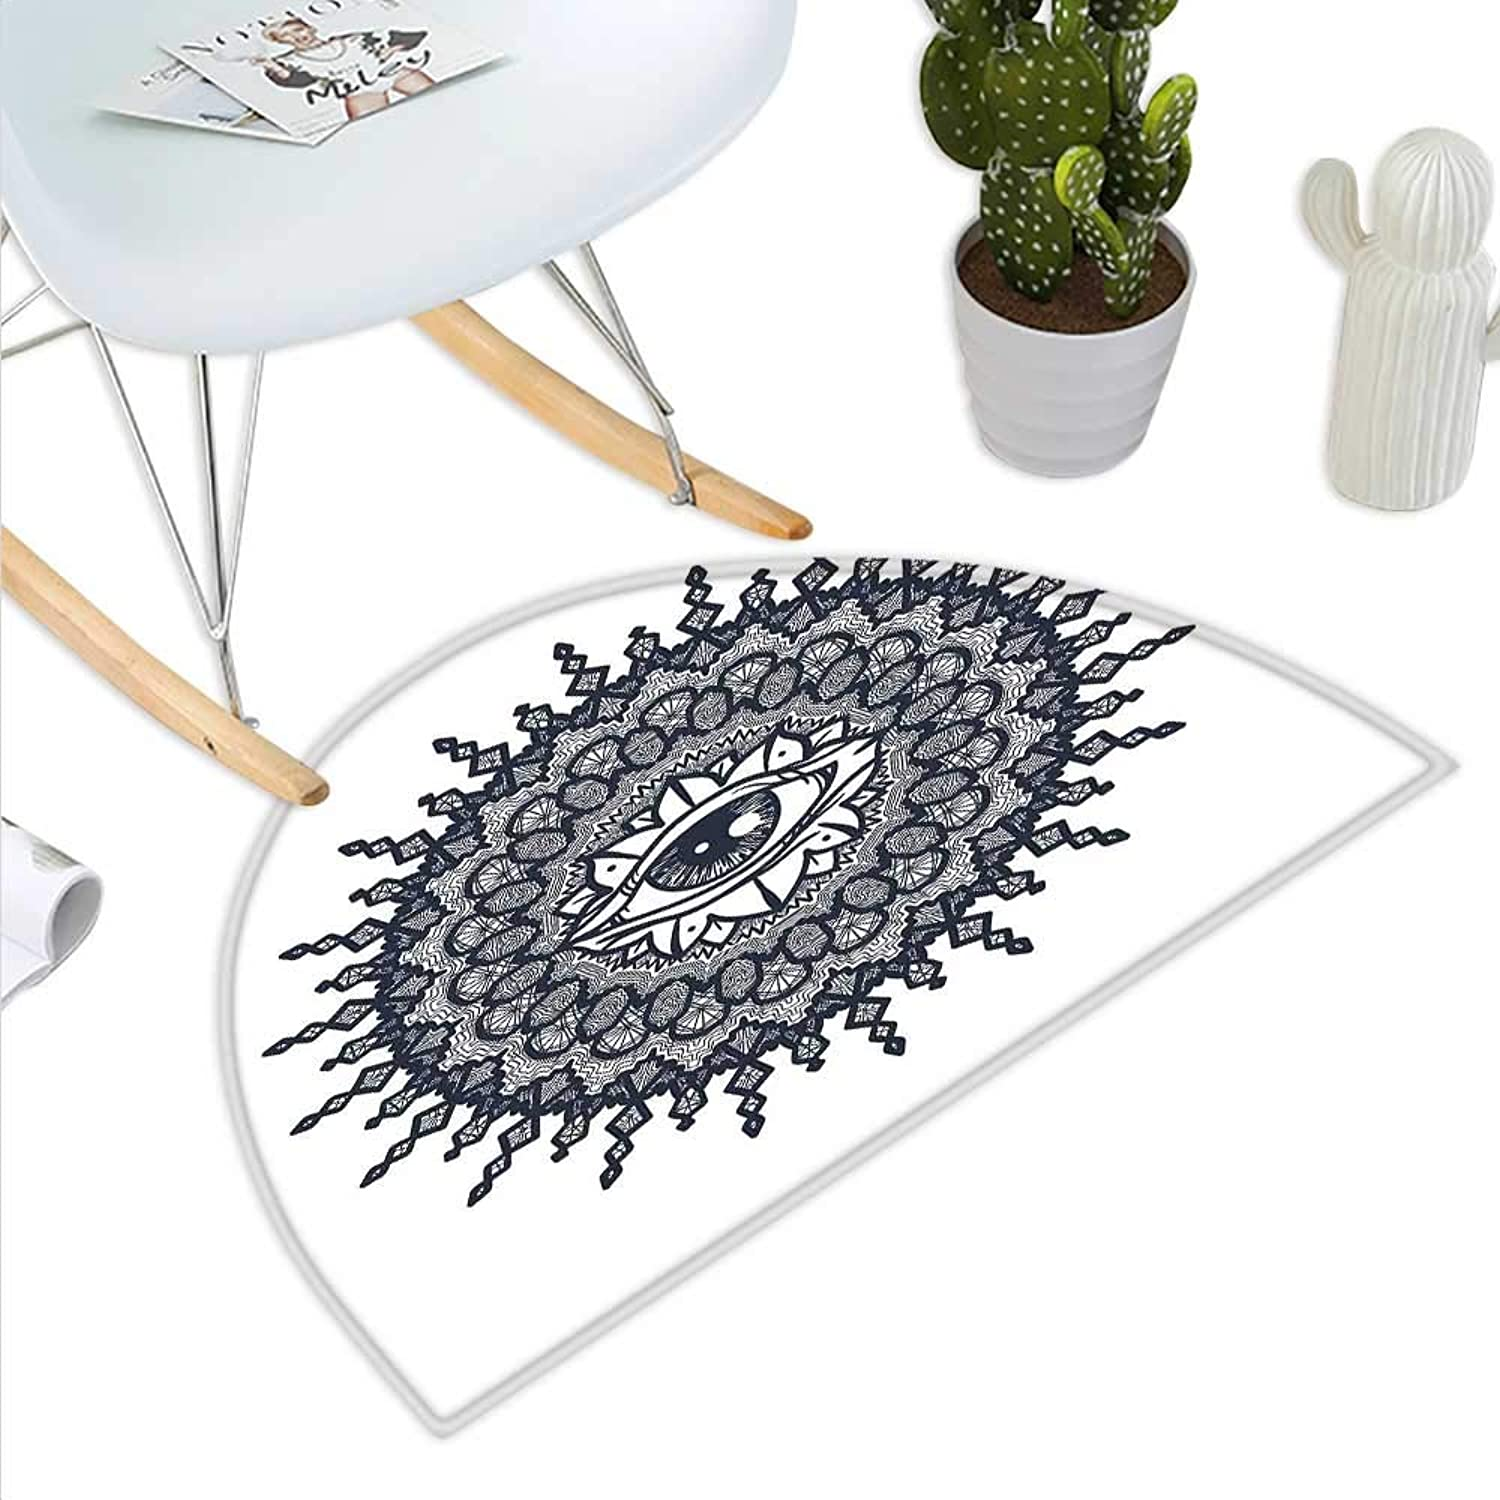 Occult Semicircle Doormat Traditional Abstract Round Mandala Motif Eye in Middle Secret Sight Occult Image Halfmoon doormats H 47.2  xD 70.8  Grey White